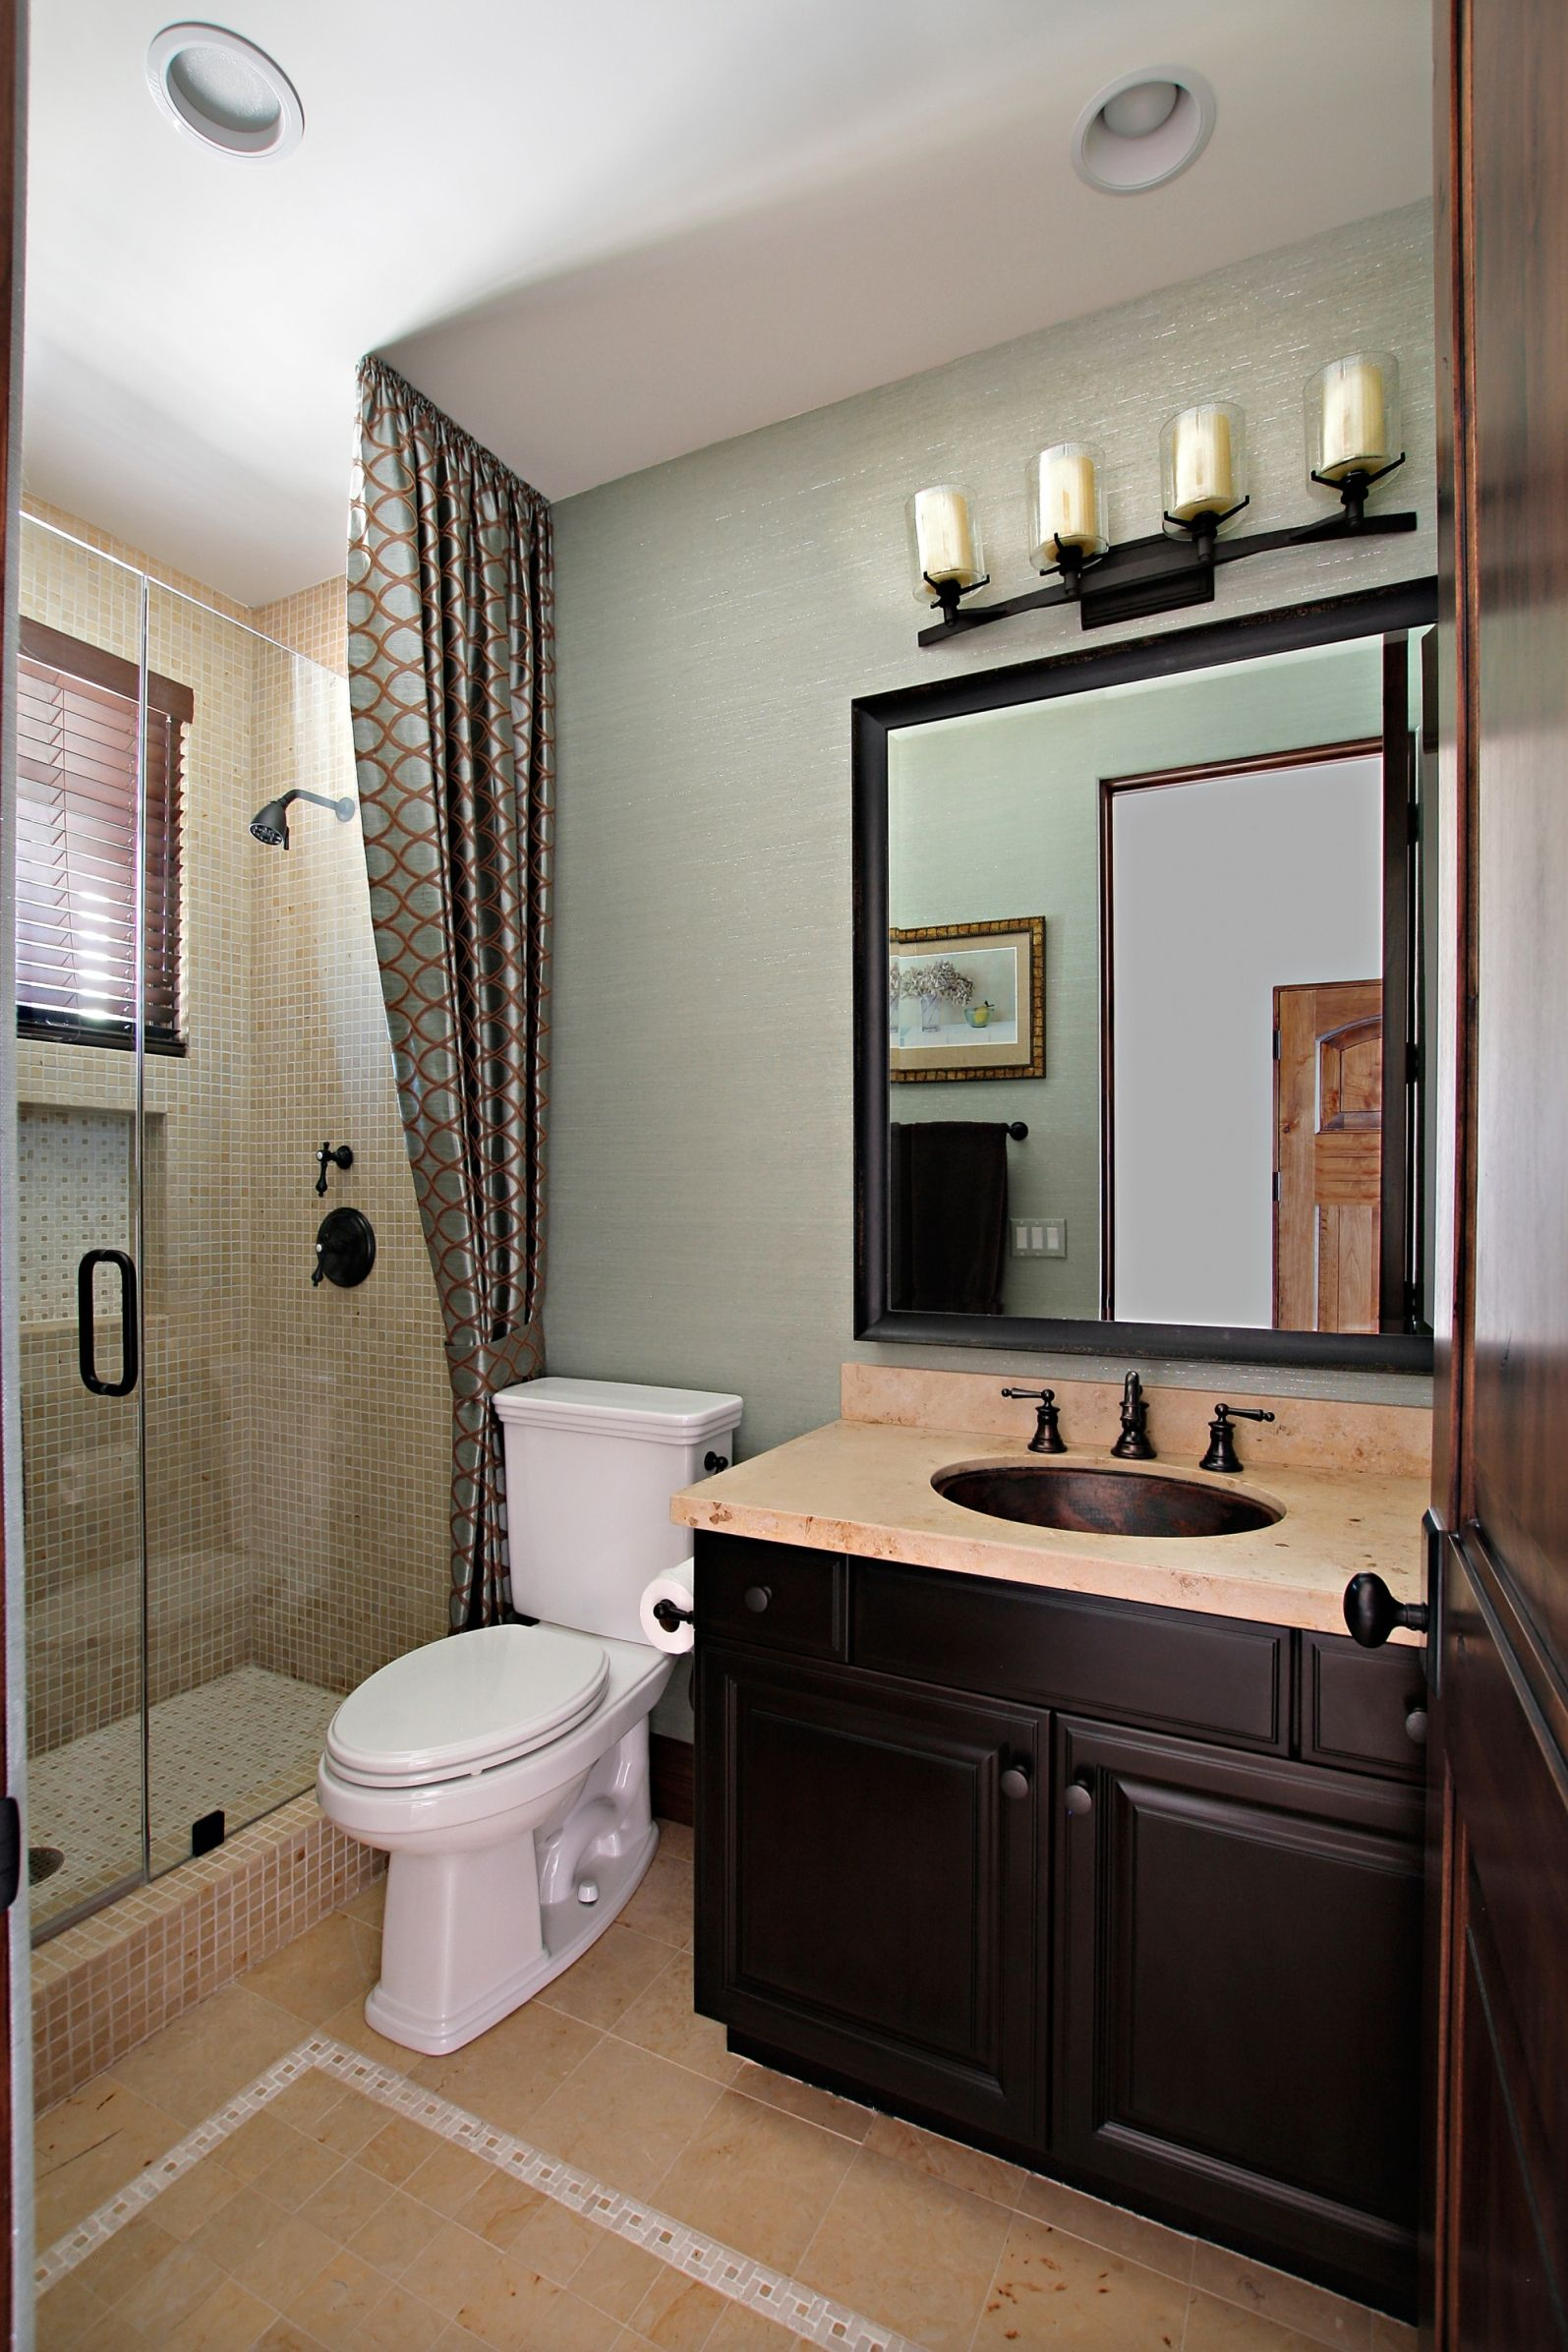 Home Decor Ideas Want additional info